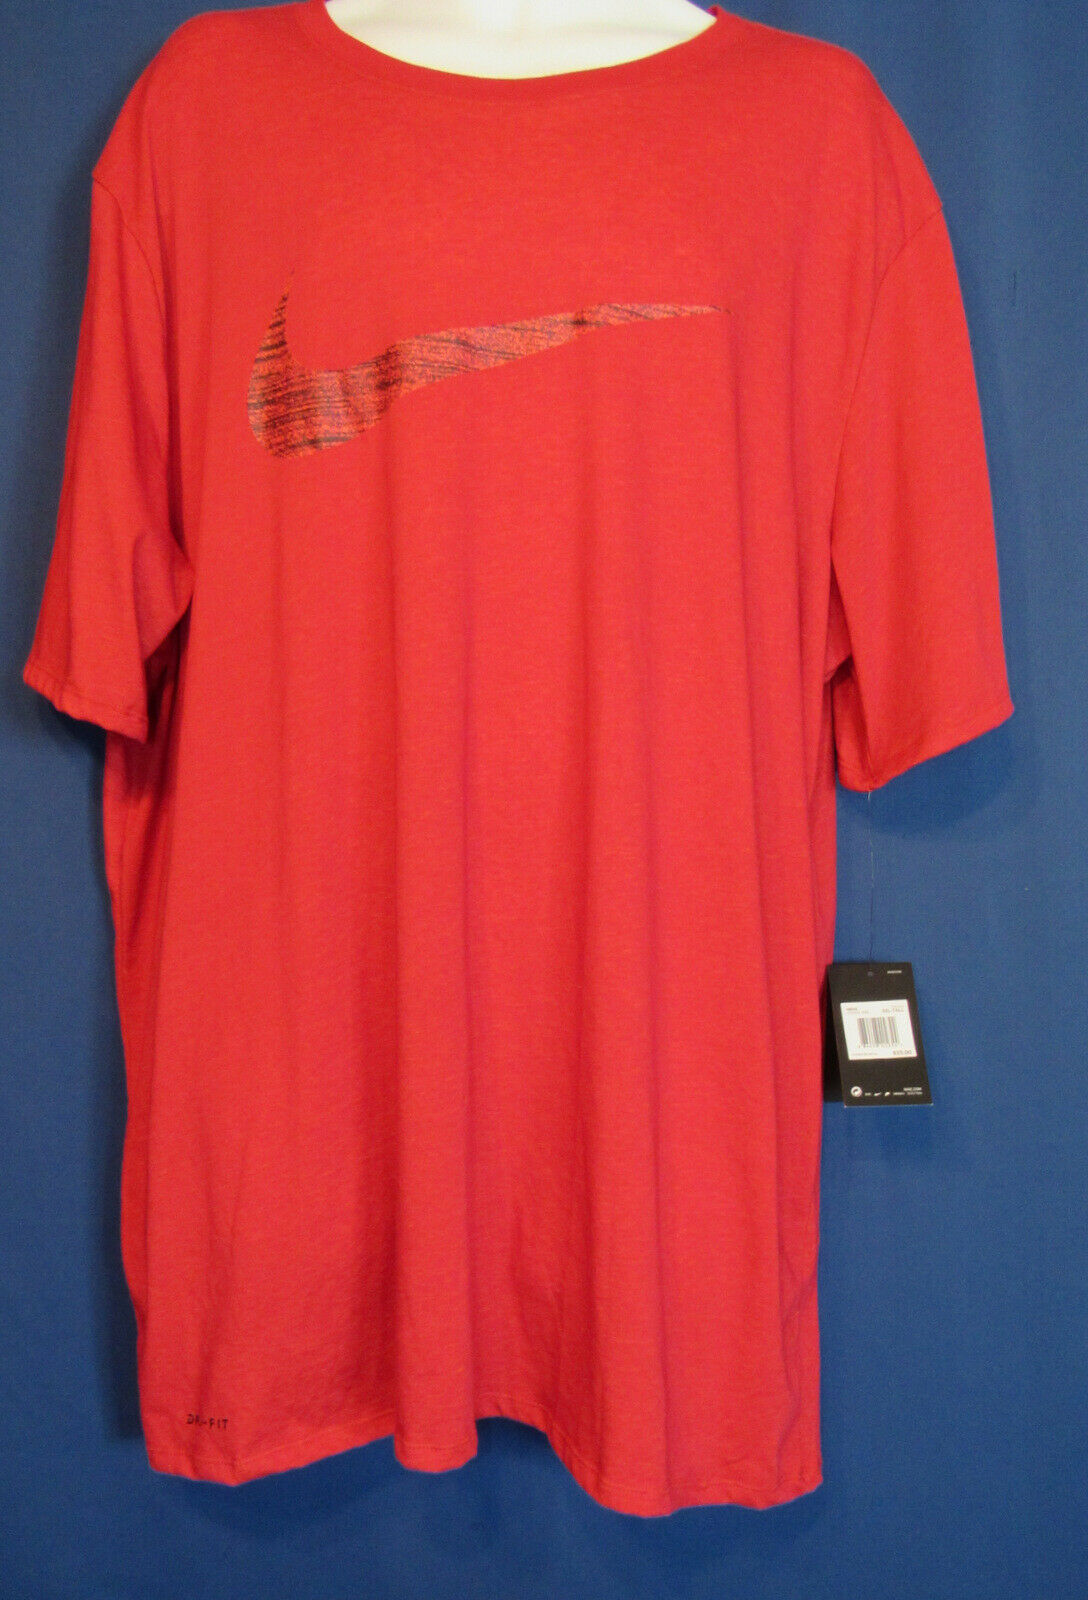 98cb057a6eafd0 Nike Athletic Cut Men s XLT Dri-Fit Training Athletic Red Tee T Shirt New  Tags